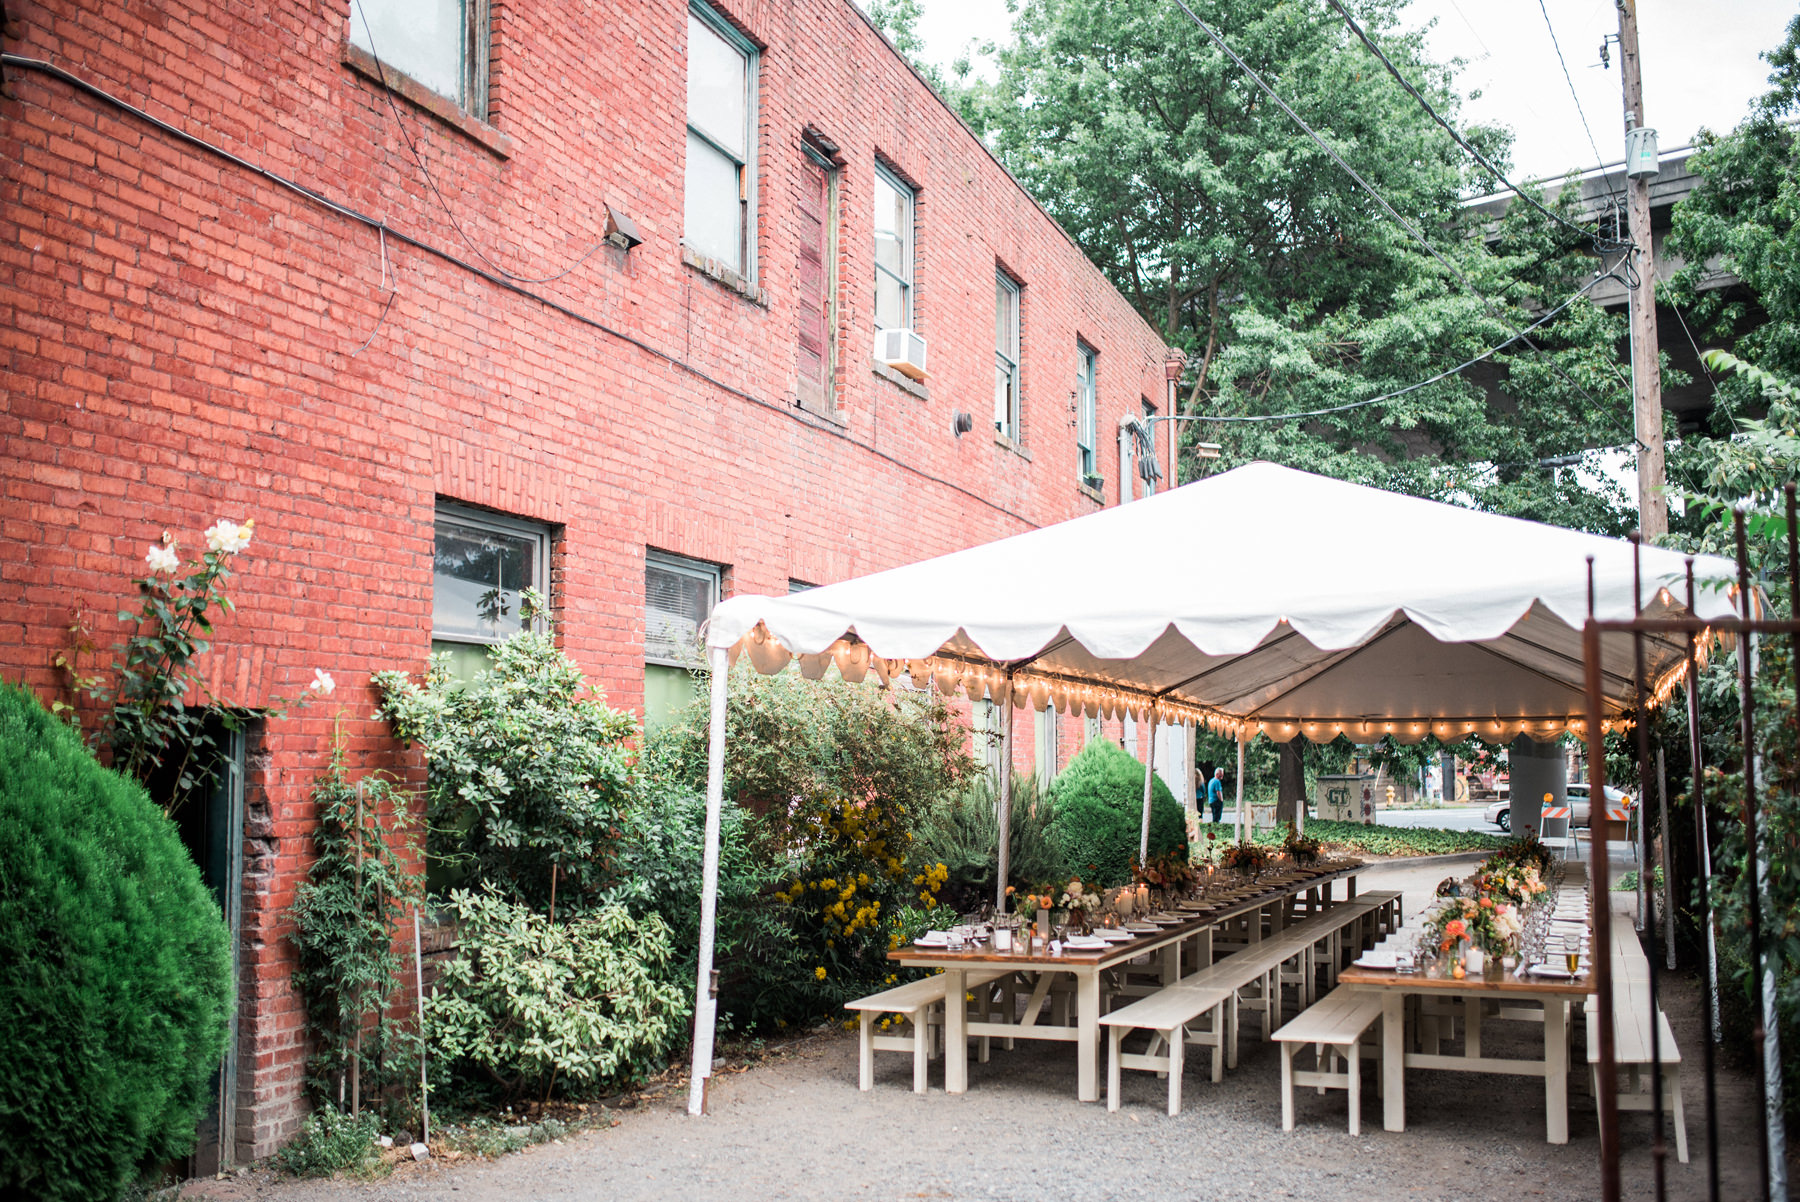 236-wedding-reception-in-the-alley-outside-the-corson-building.jpg